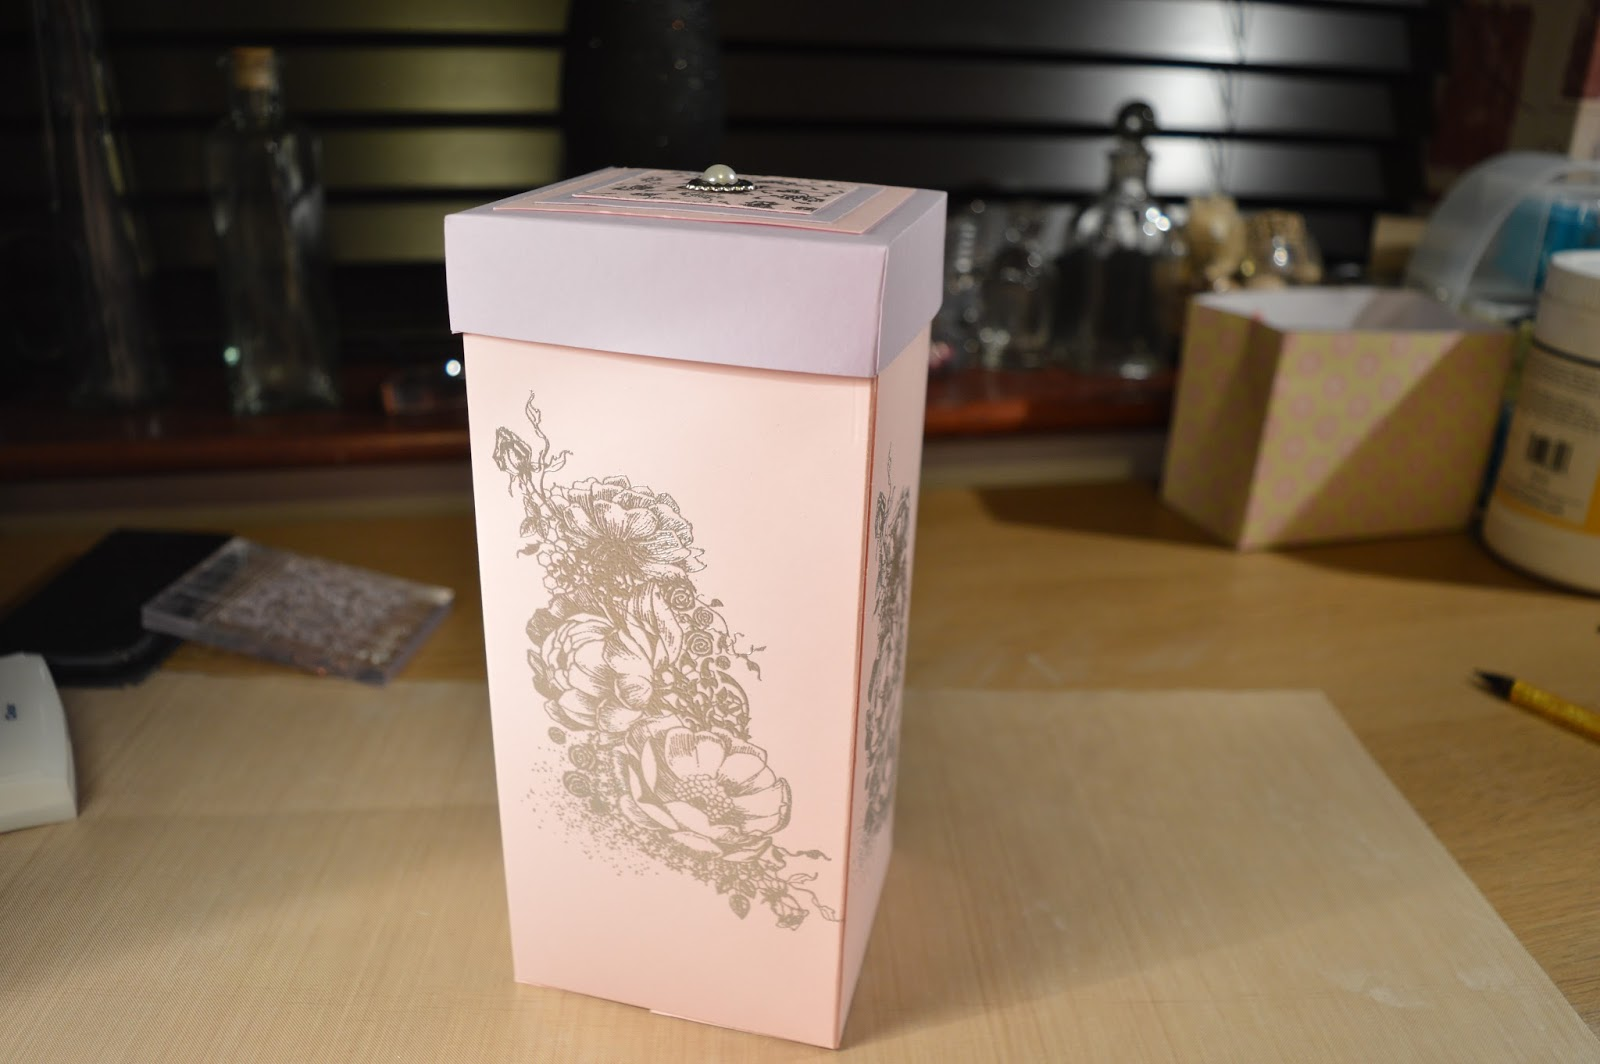 Sukilu crafts wine glass box step by step tutorial for Glass boxes for crafts